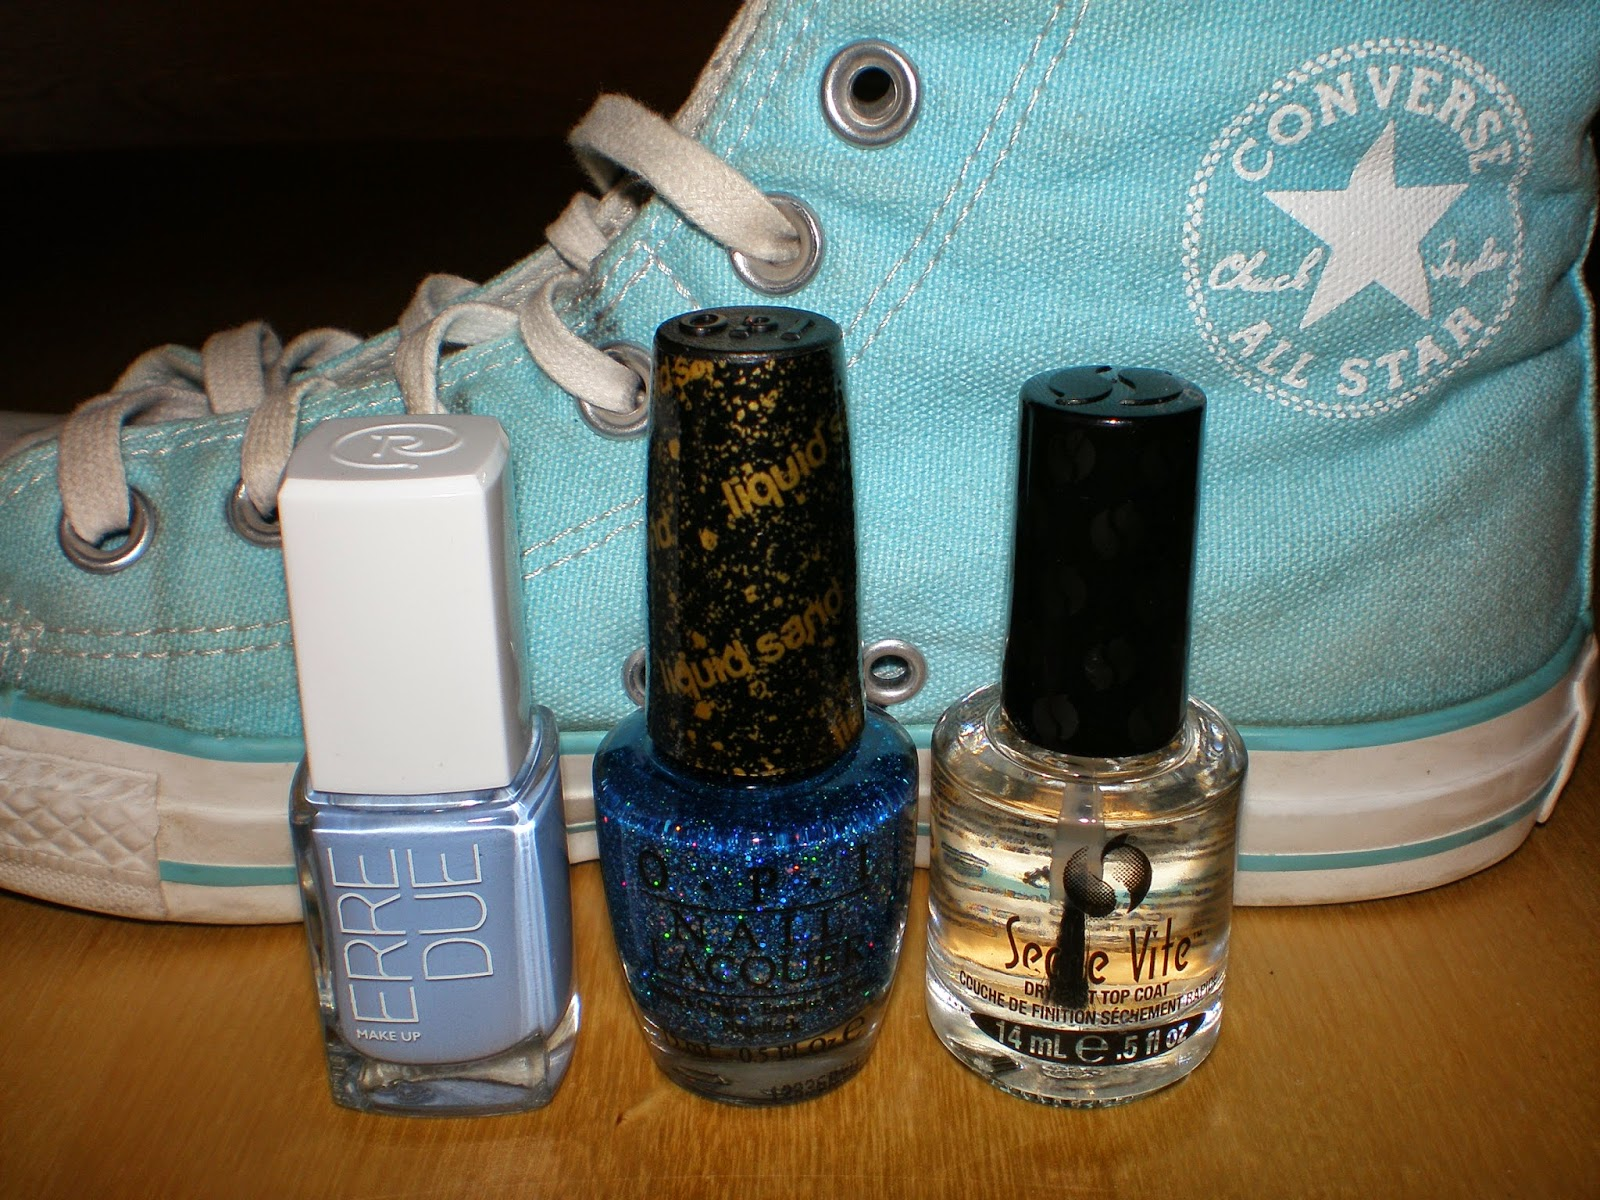 Erre Due in 229 Baby Blue, OPI in Get Your Number and Seche Vite Dry Fast Top Coat